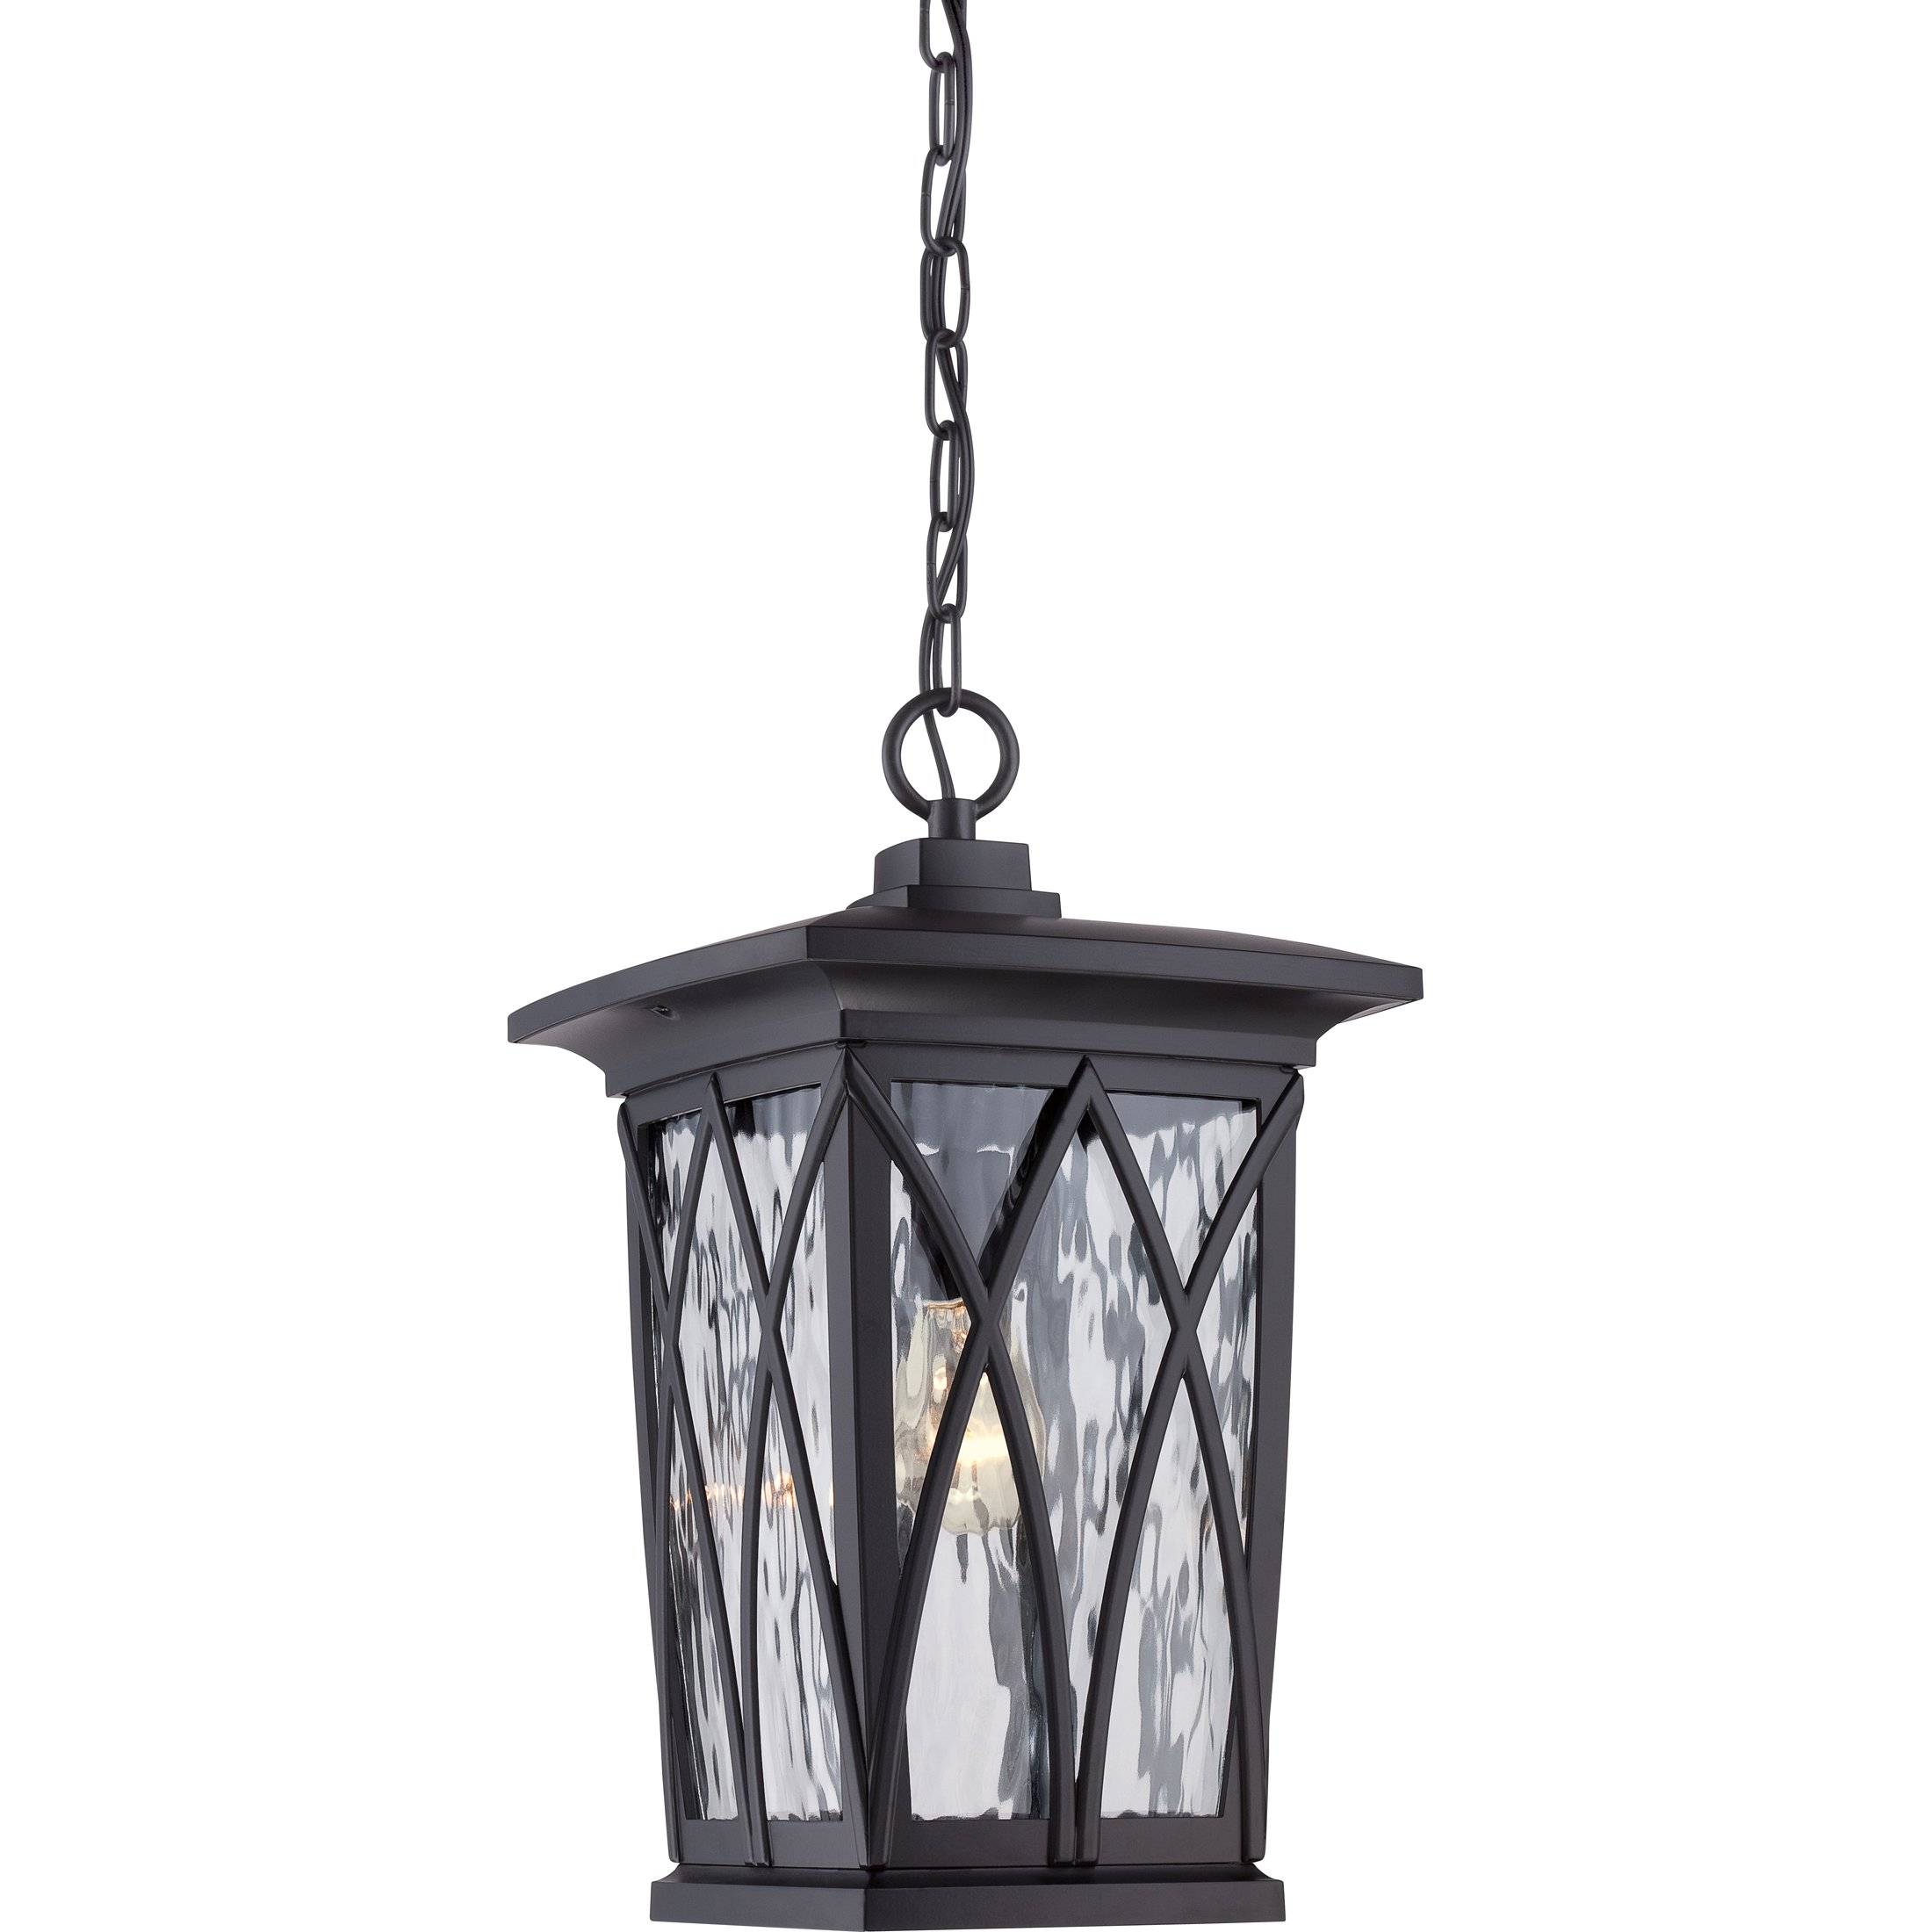 Quoizel GVR1910K One Light Outdoor Hanging Lantern